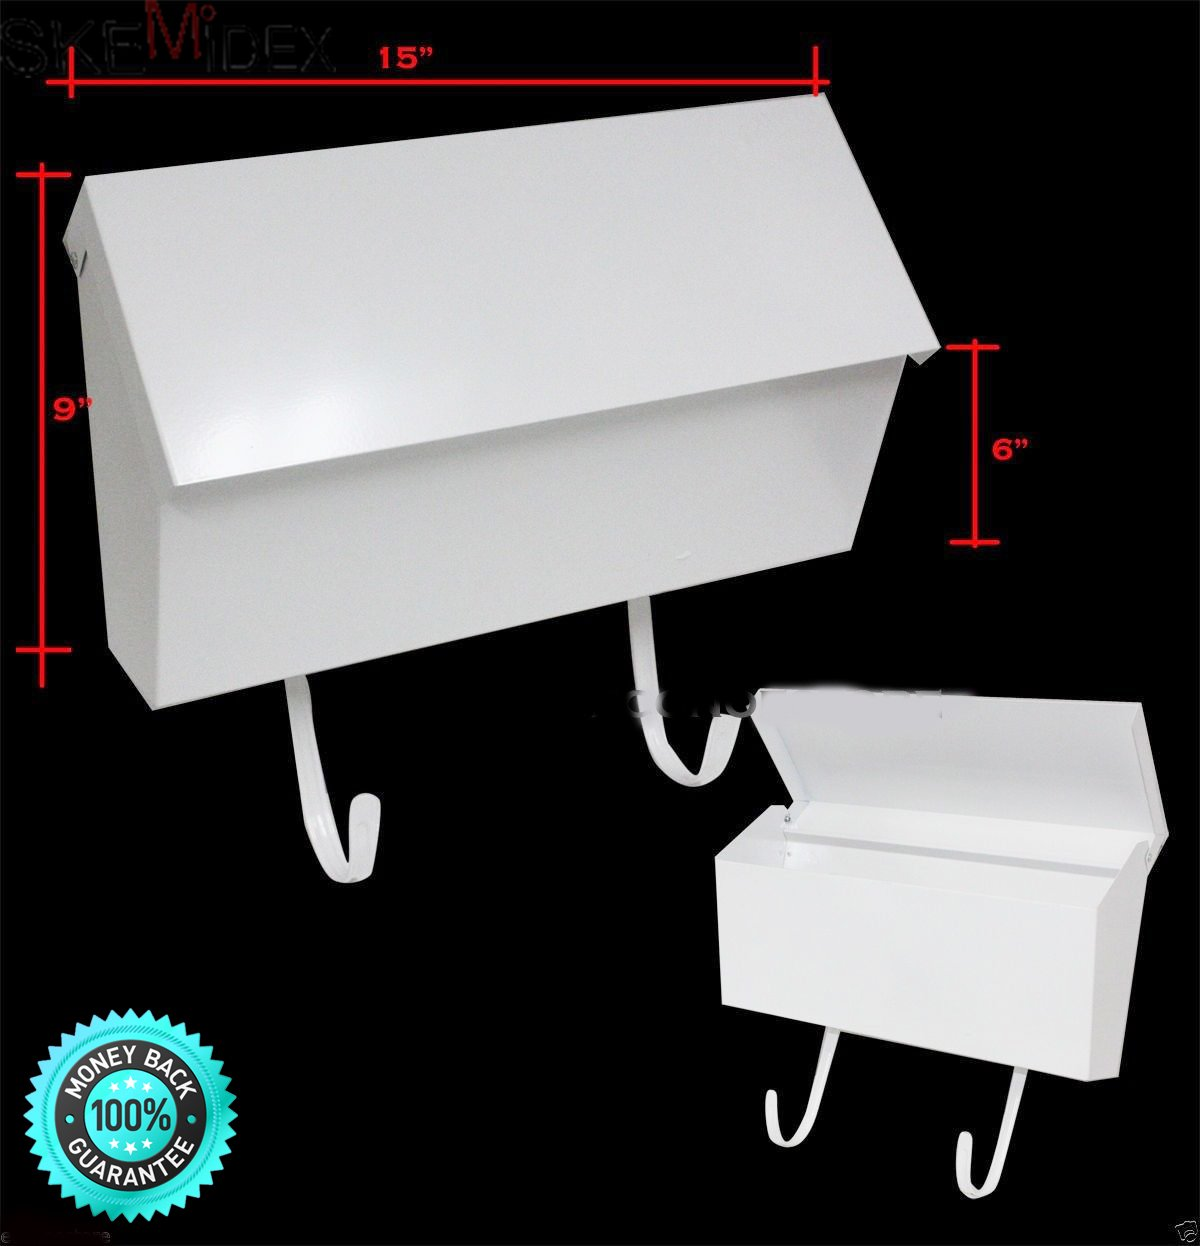 SKEMiDEX---New 15''x9''x6'' Wall Mount White Mail Box #CHIMB101. Mailbox Is Made of 8 And 20 Gauge Steel Construction And Covered In A Durable Powder-coated Finish To Protect It